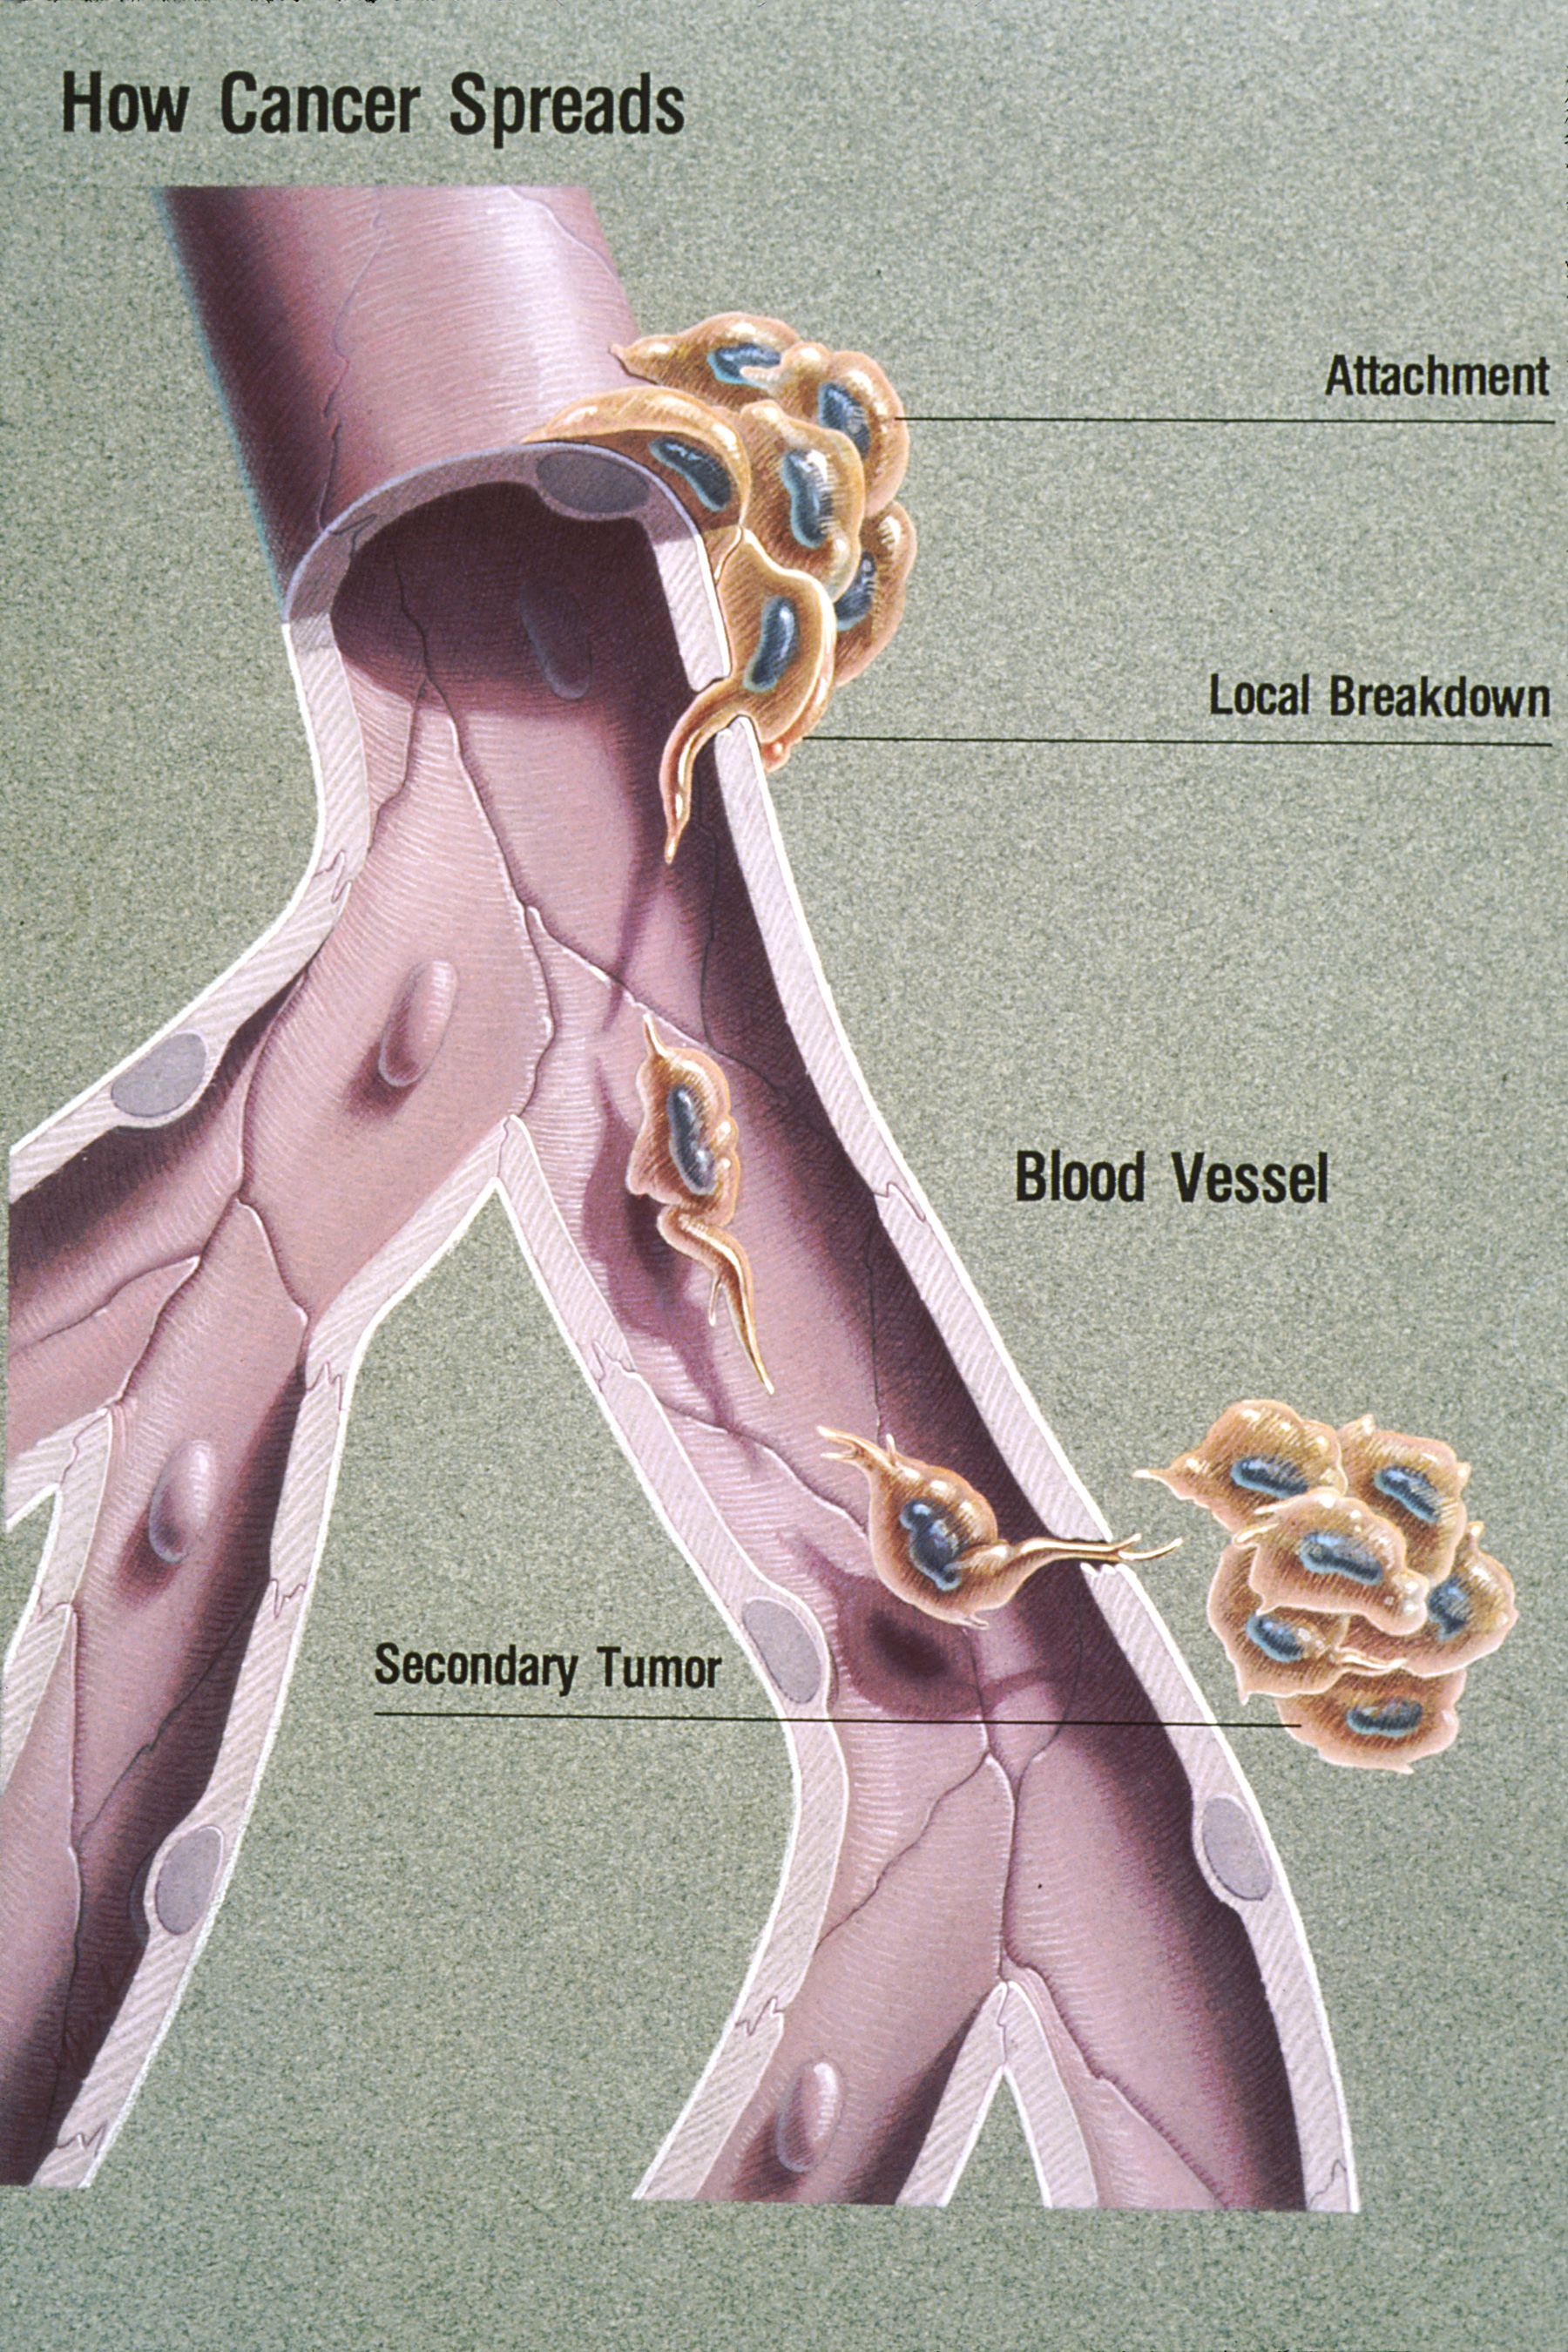 metastatic cancer and blood